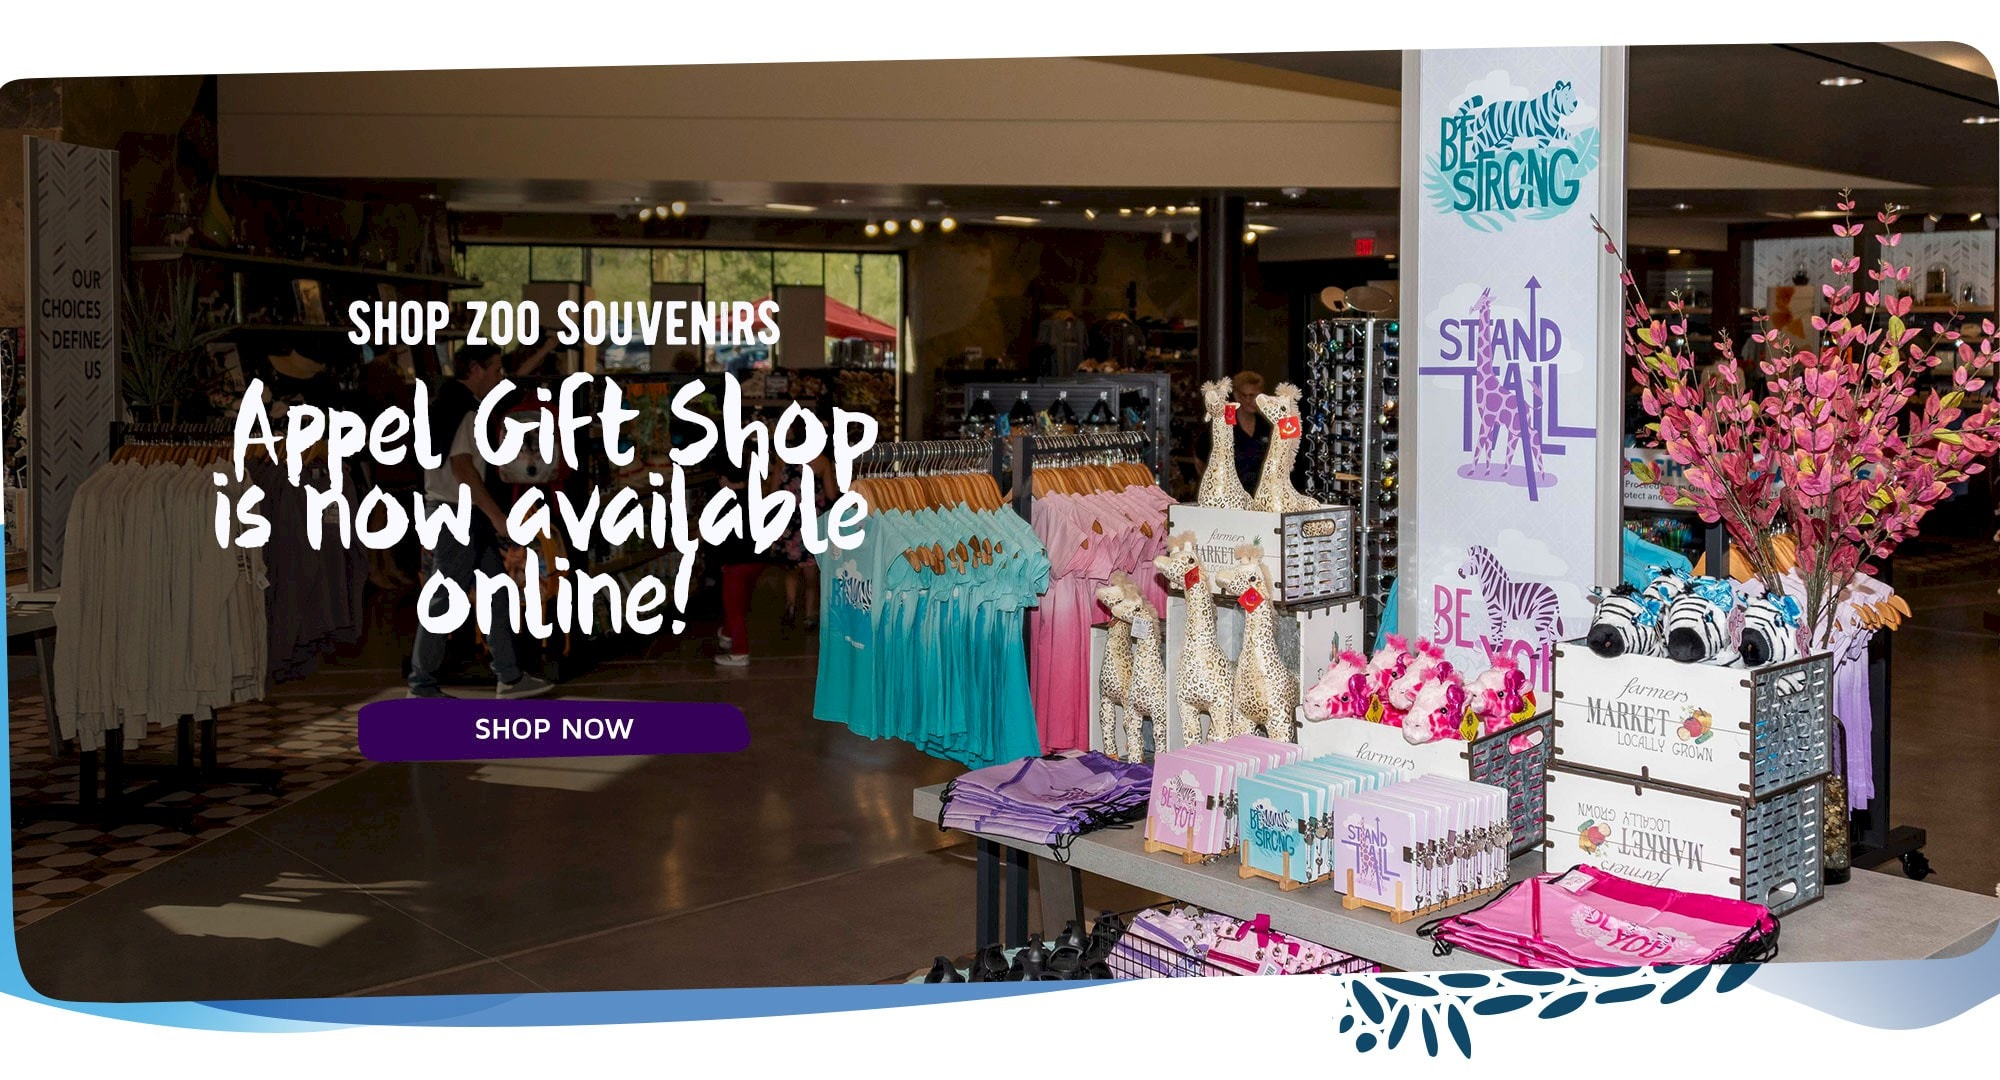 The Living Desert's gift shop is now online! Click to start shopping now.